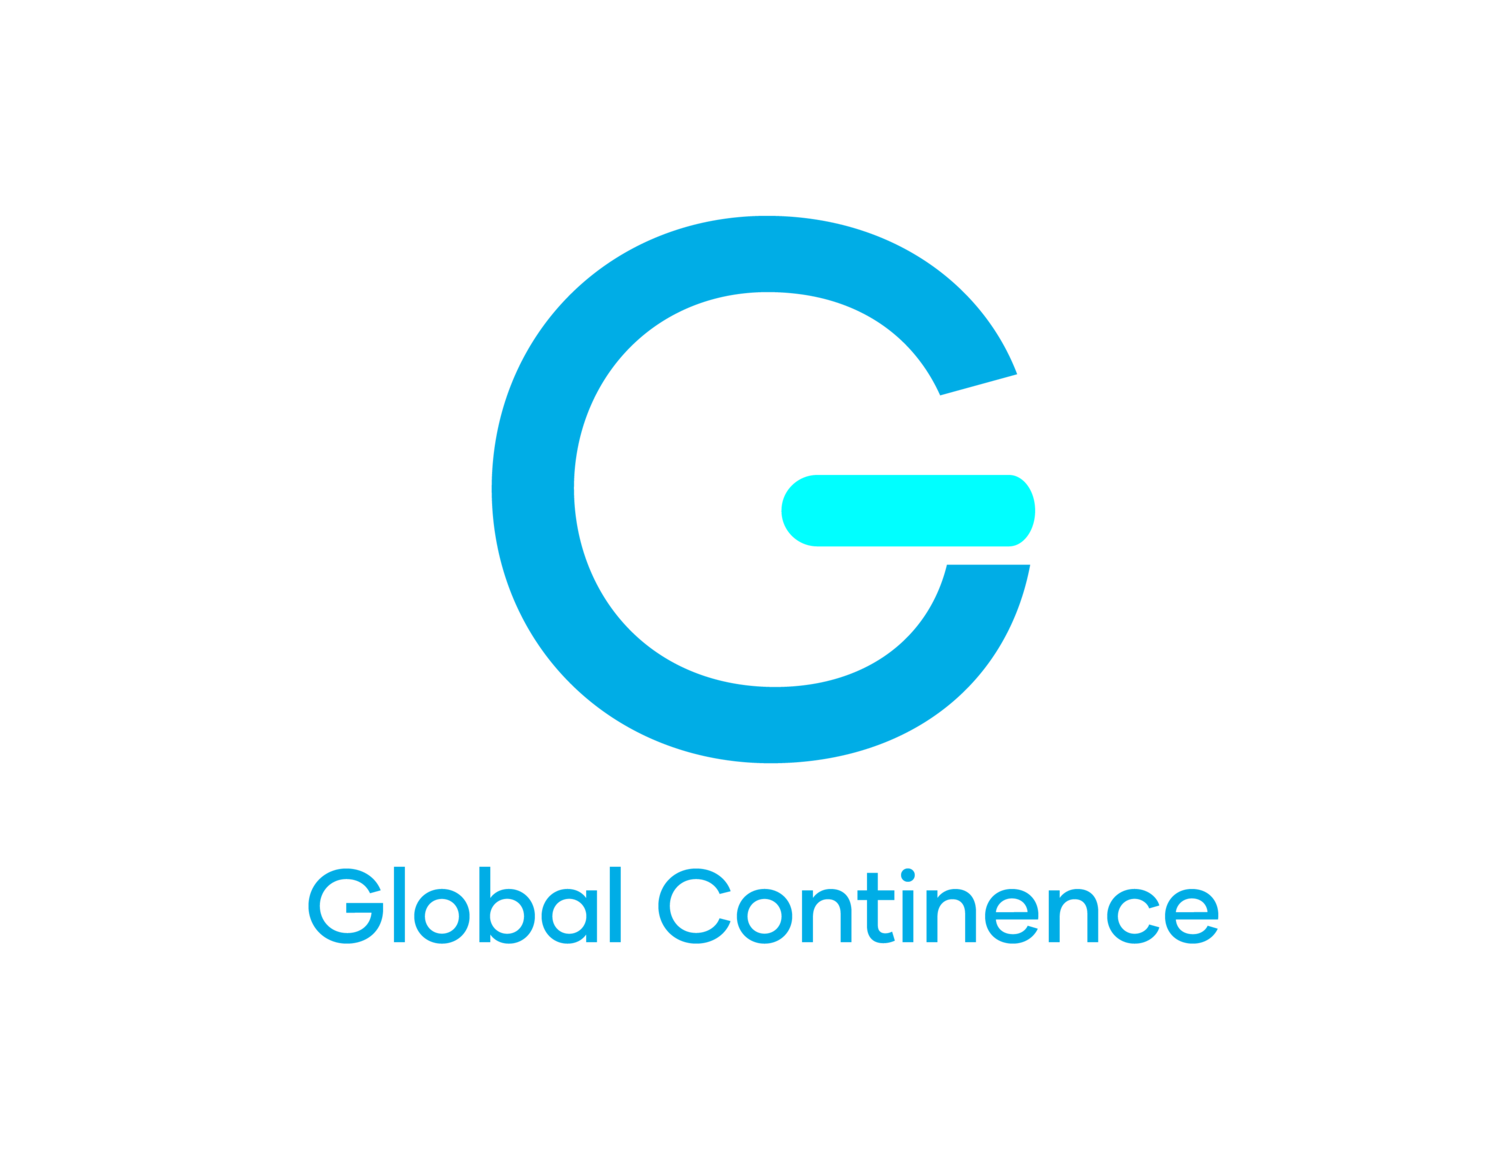 global continence